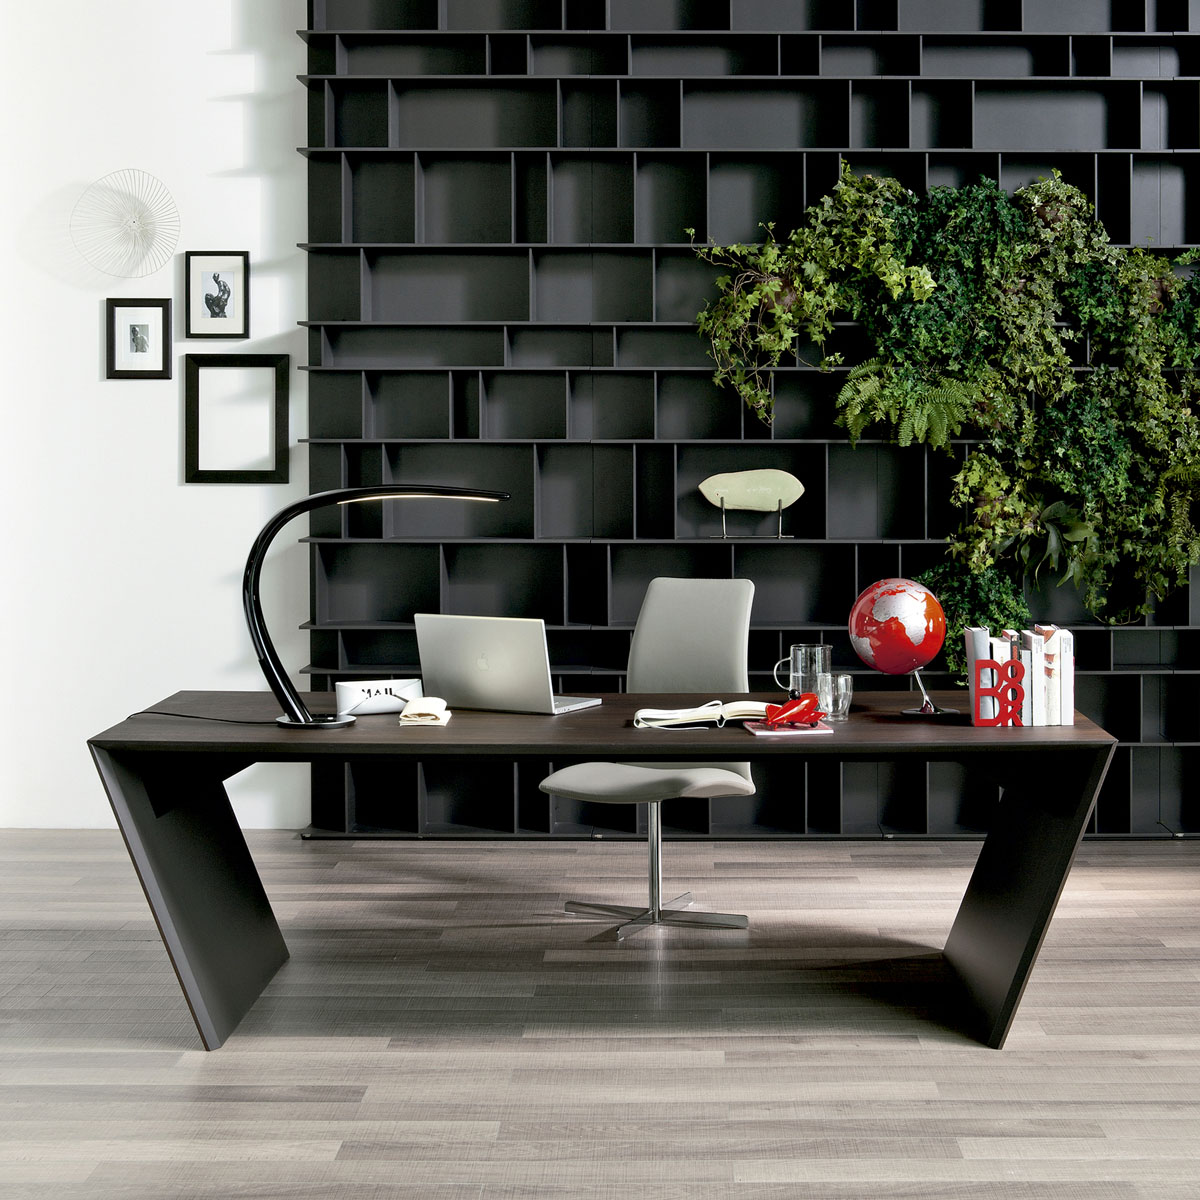 bureau design de luxe en inox idkrea collection rennes bretagne. Black Bedroom Furniture Sets. Home Design Ideas